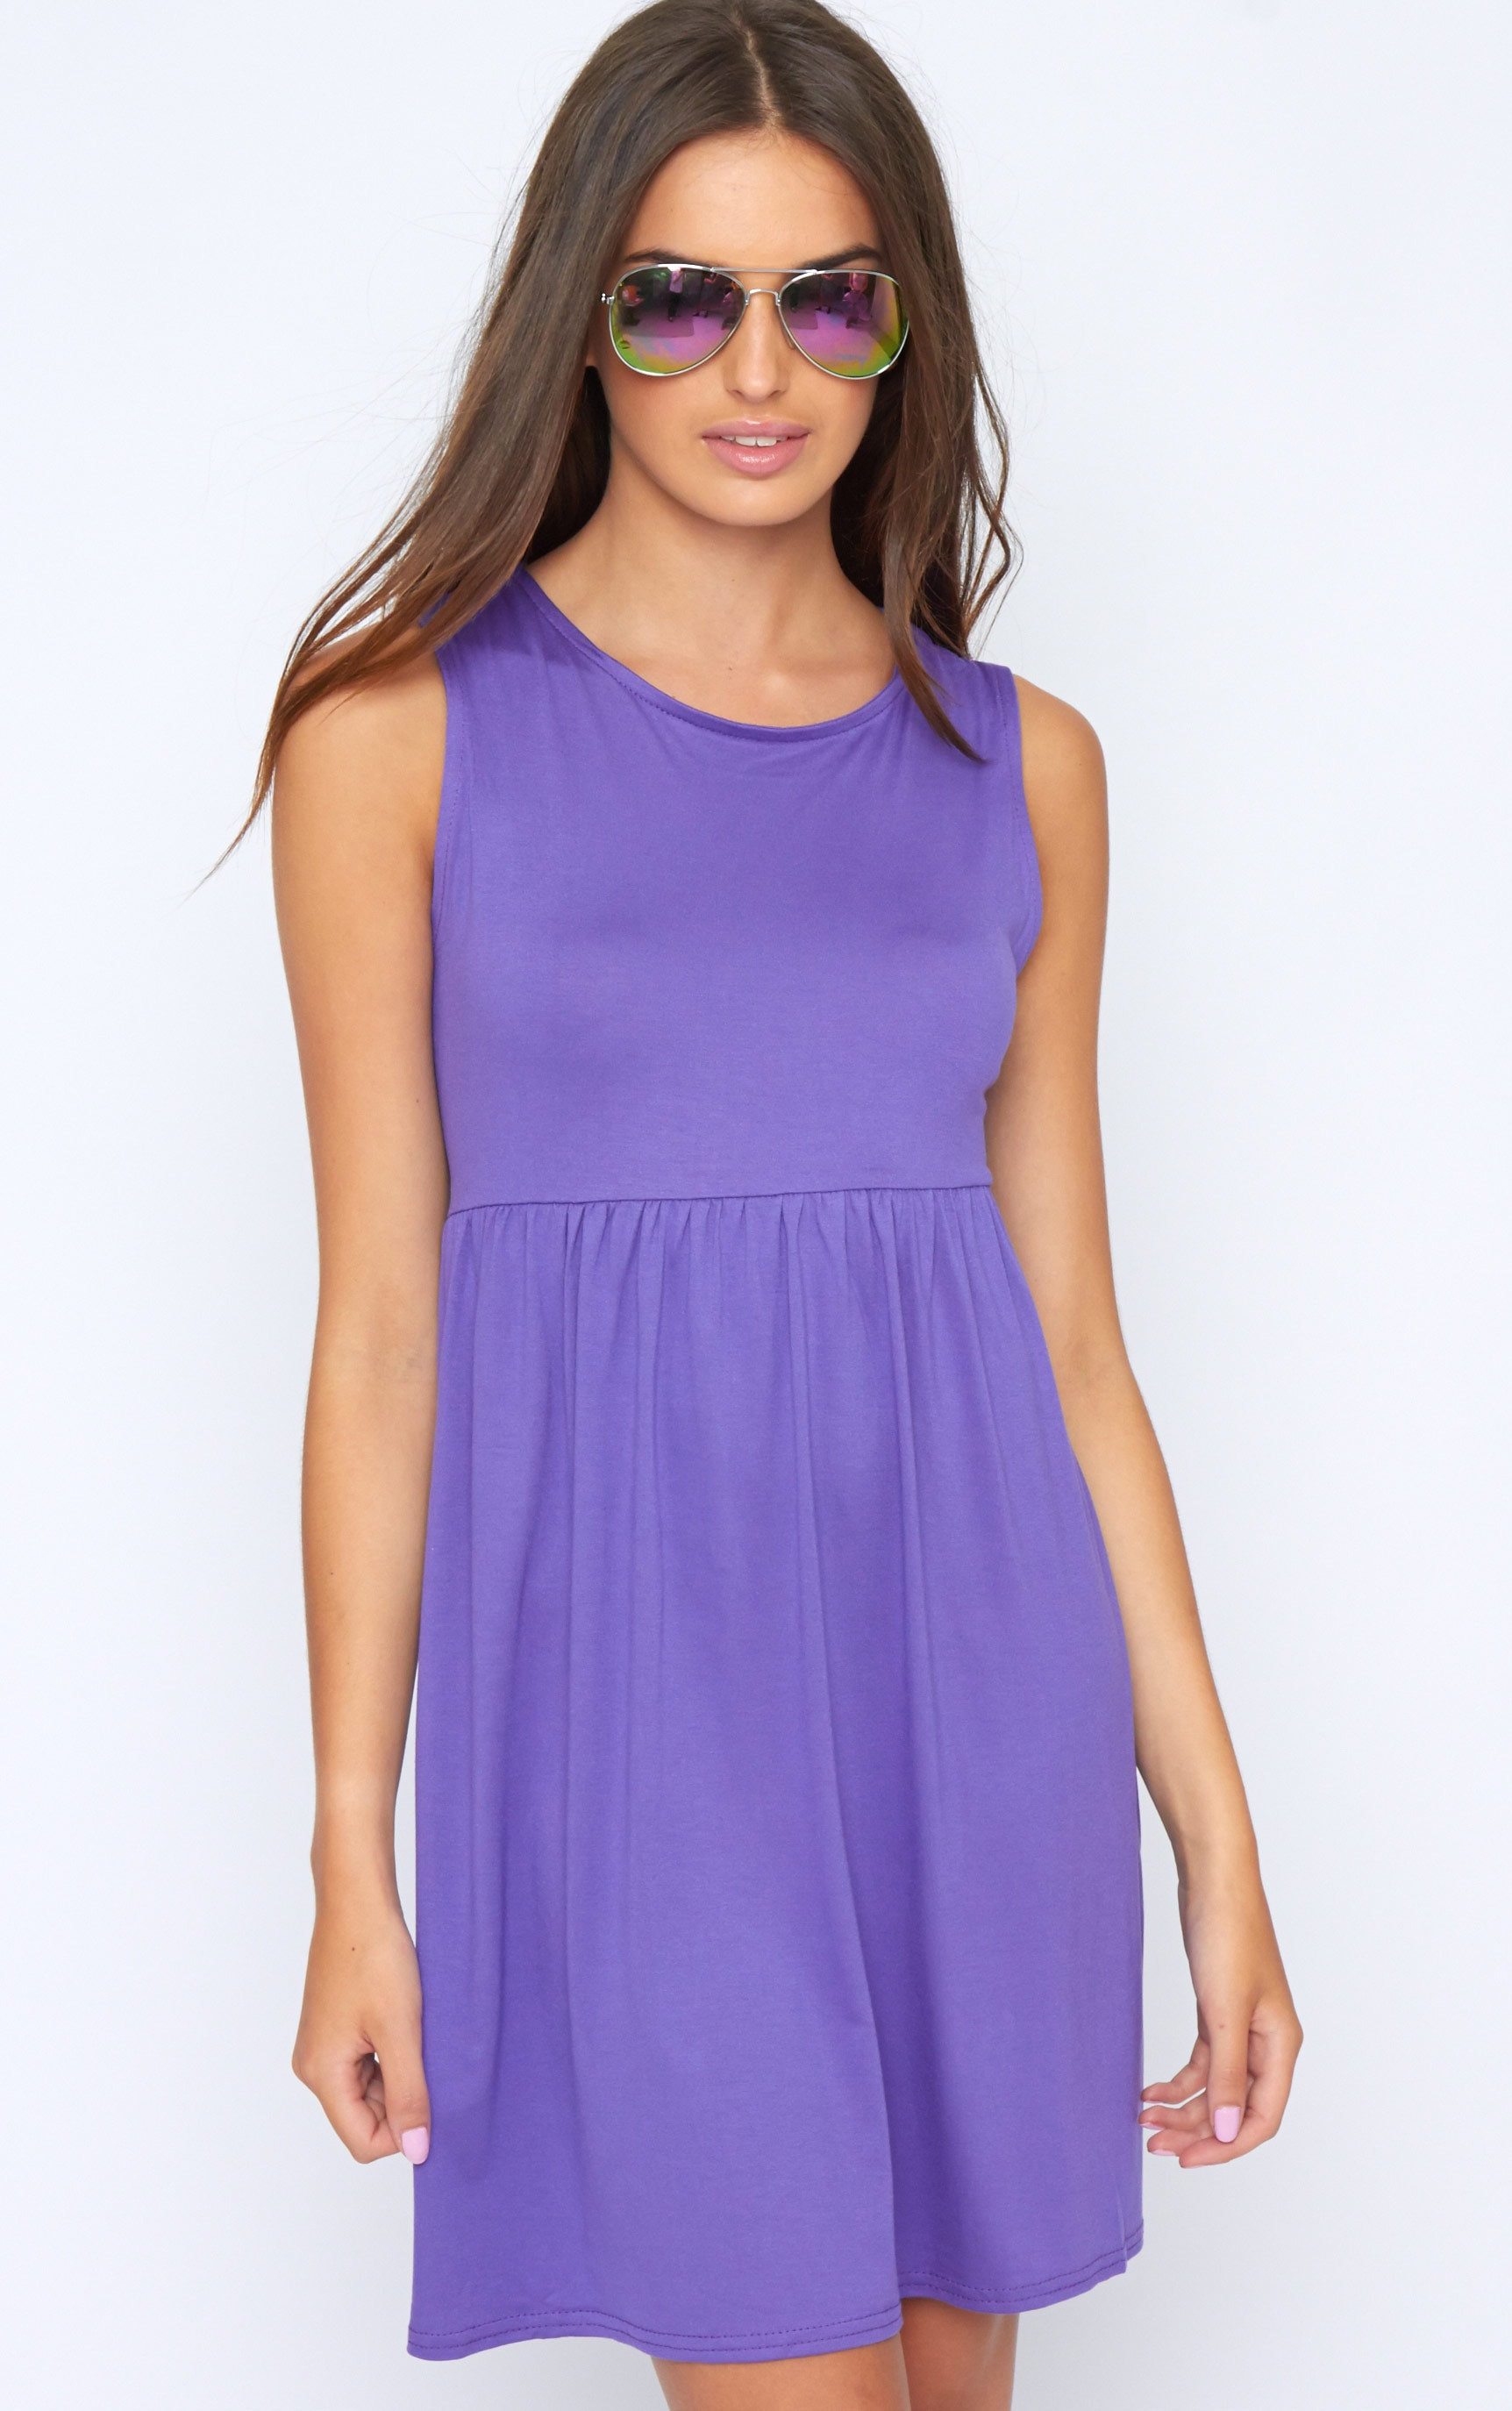 Kirsten Purple Sleeveless Smock Dress 1